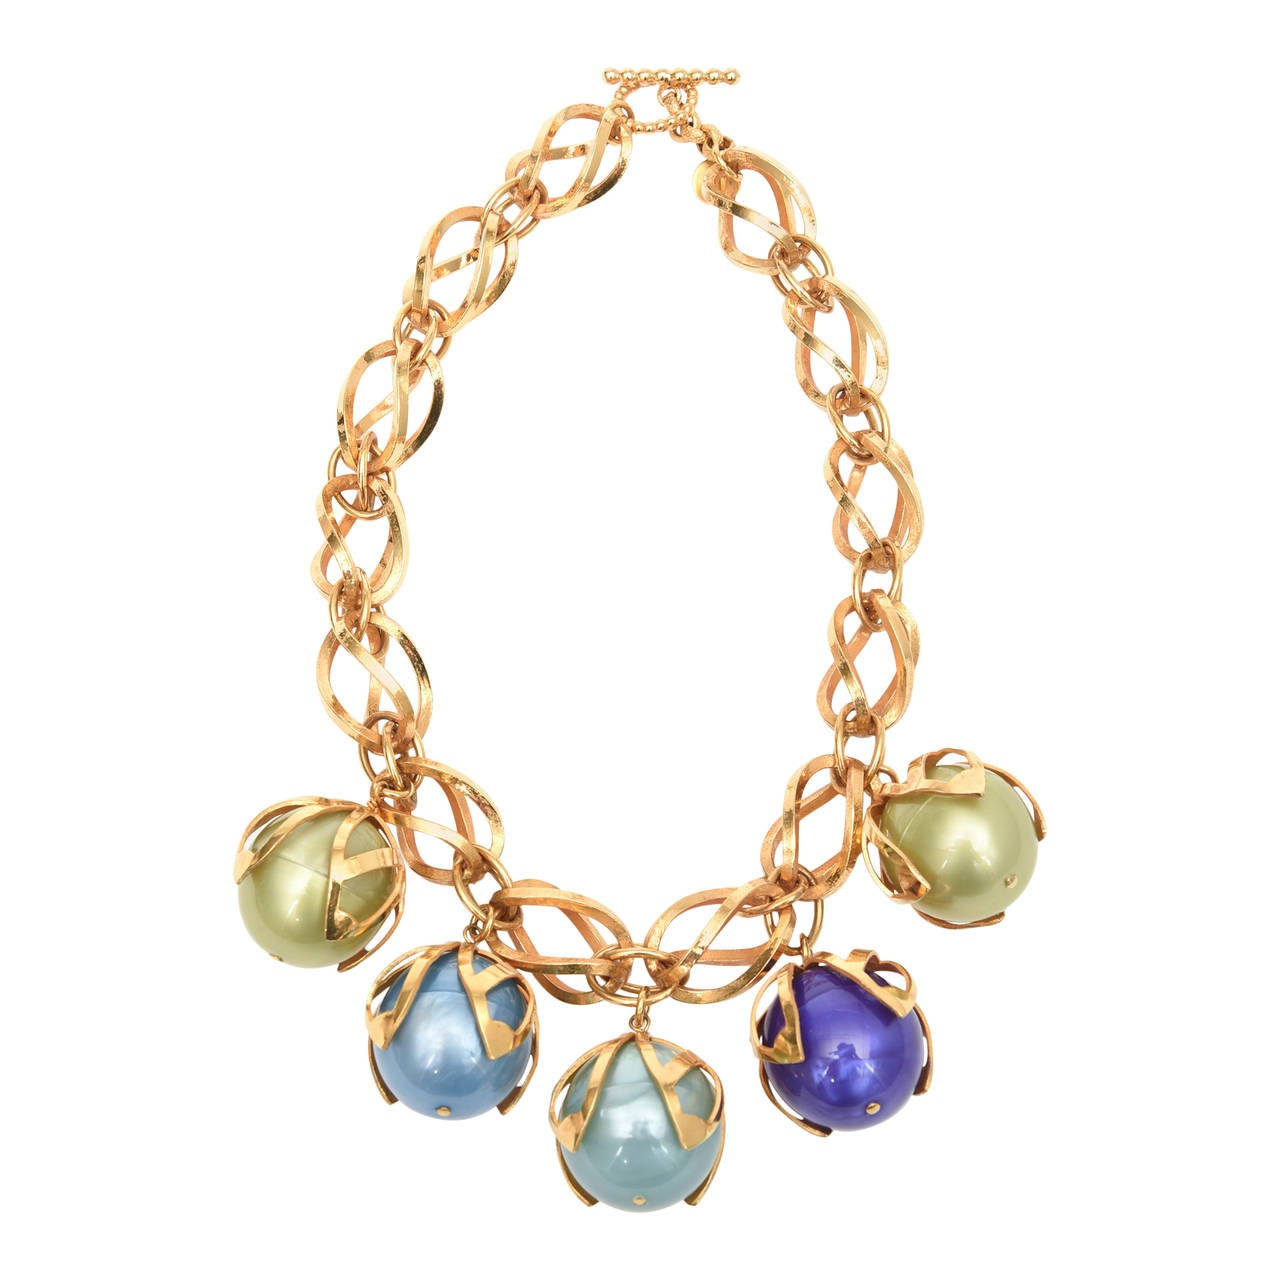 Dominique Aurientis 4 Ball French Gold Link and Resin Ball Necklace  For Sale